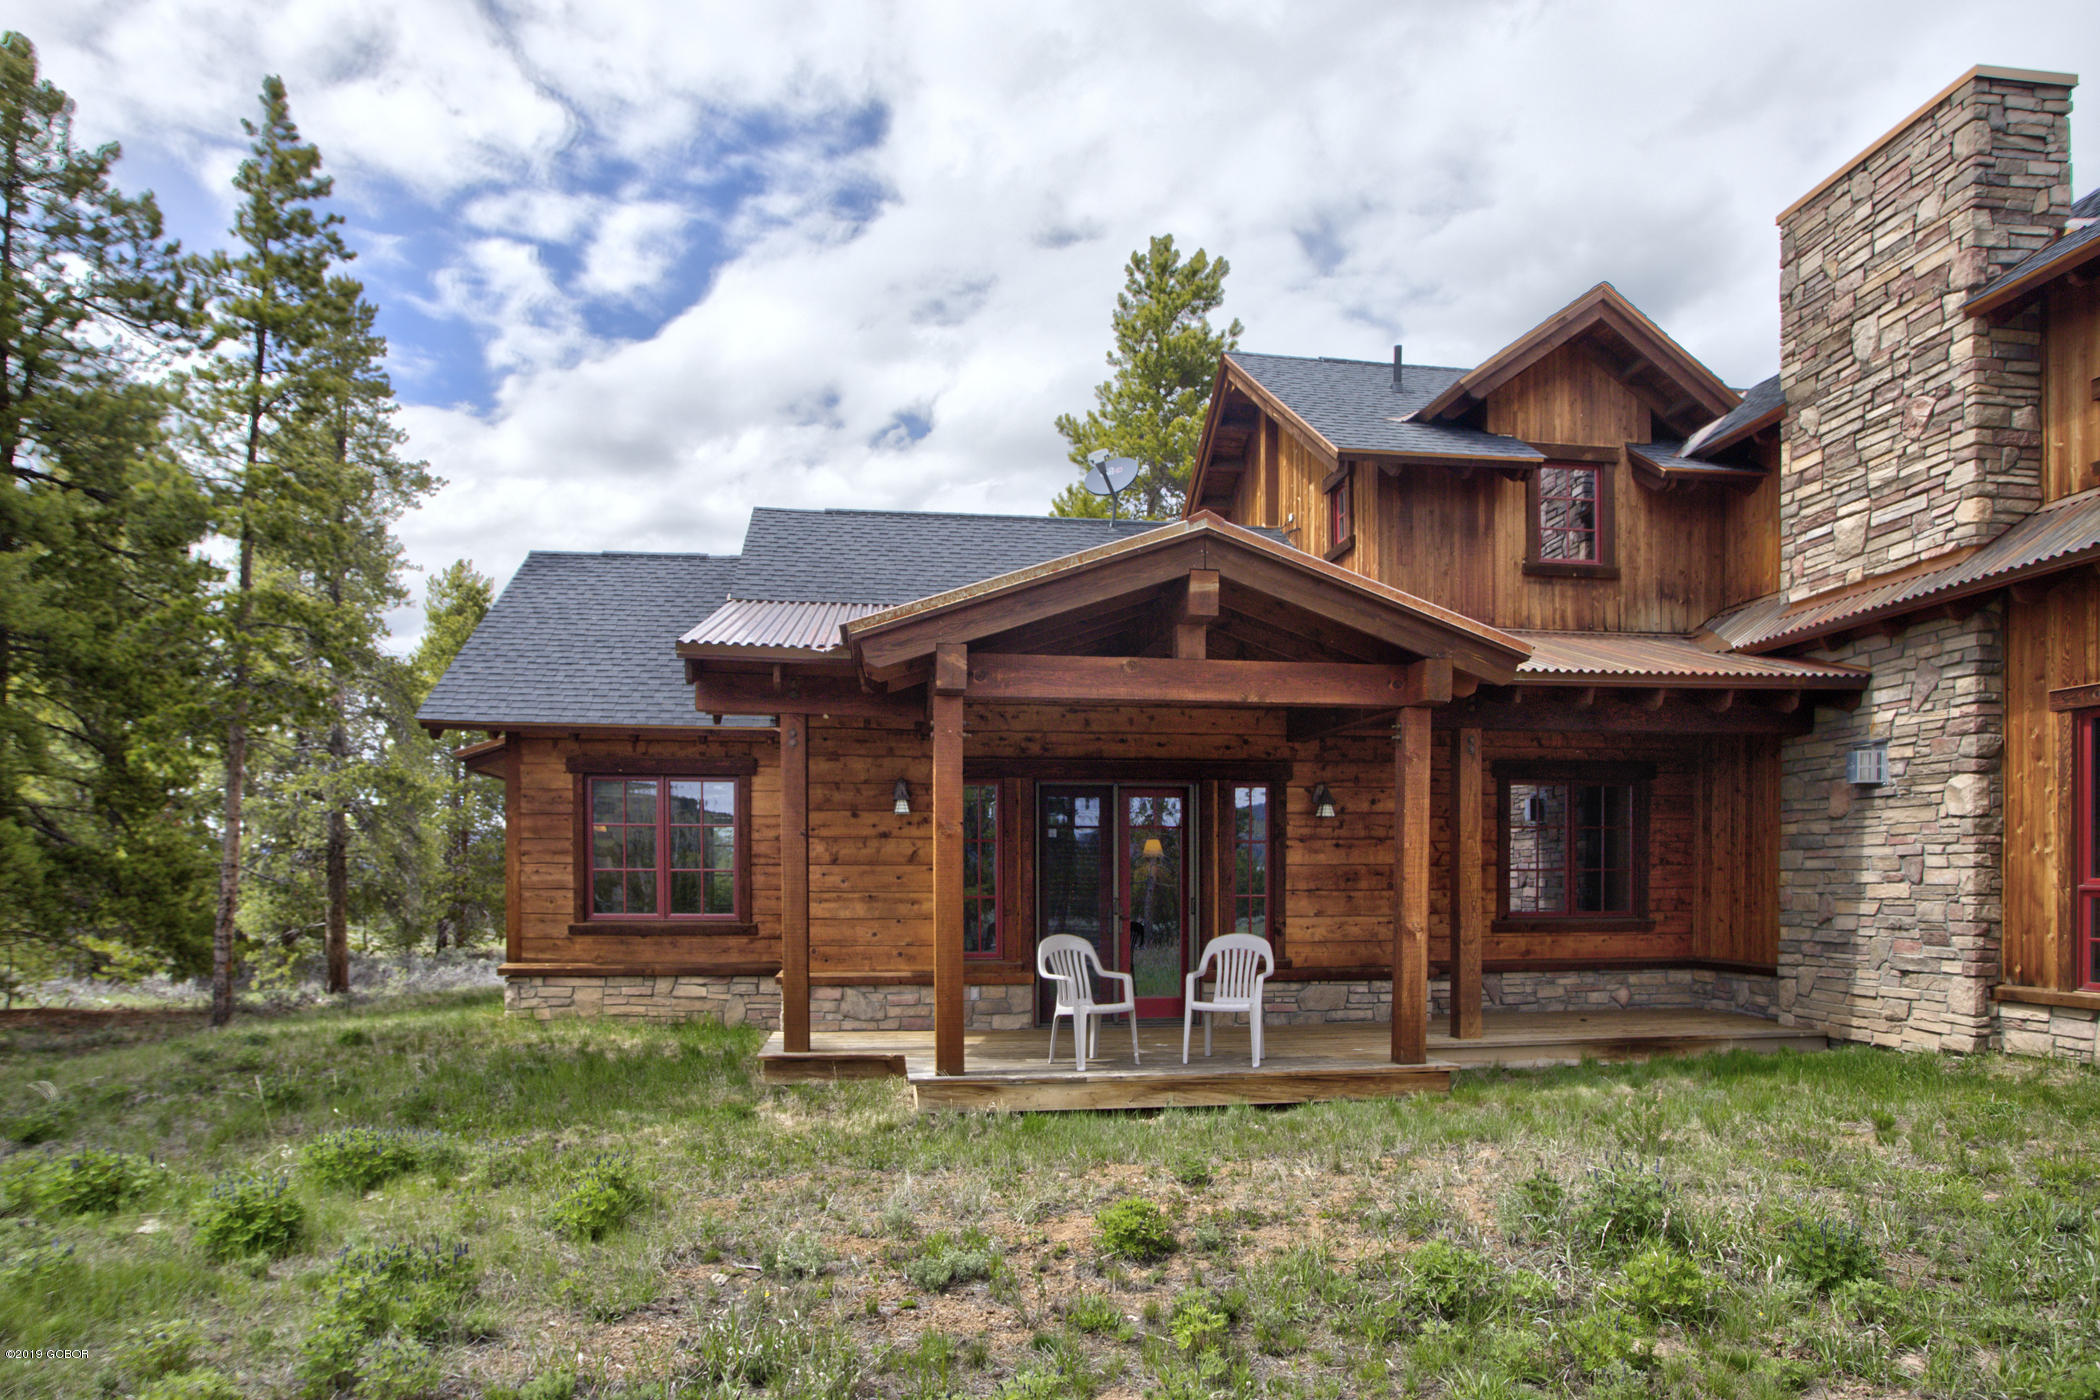 MLS# 19-704 - 19 - 612 County Rd 6237  #, Granby, CO 80446